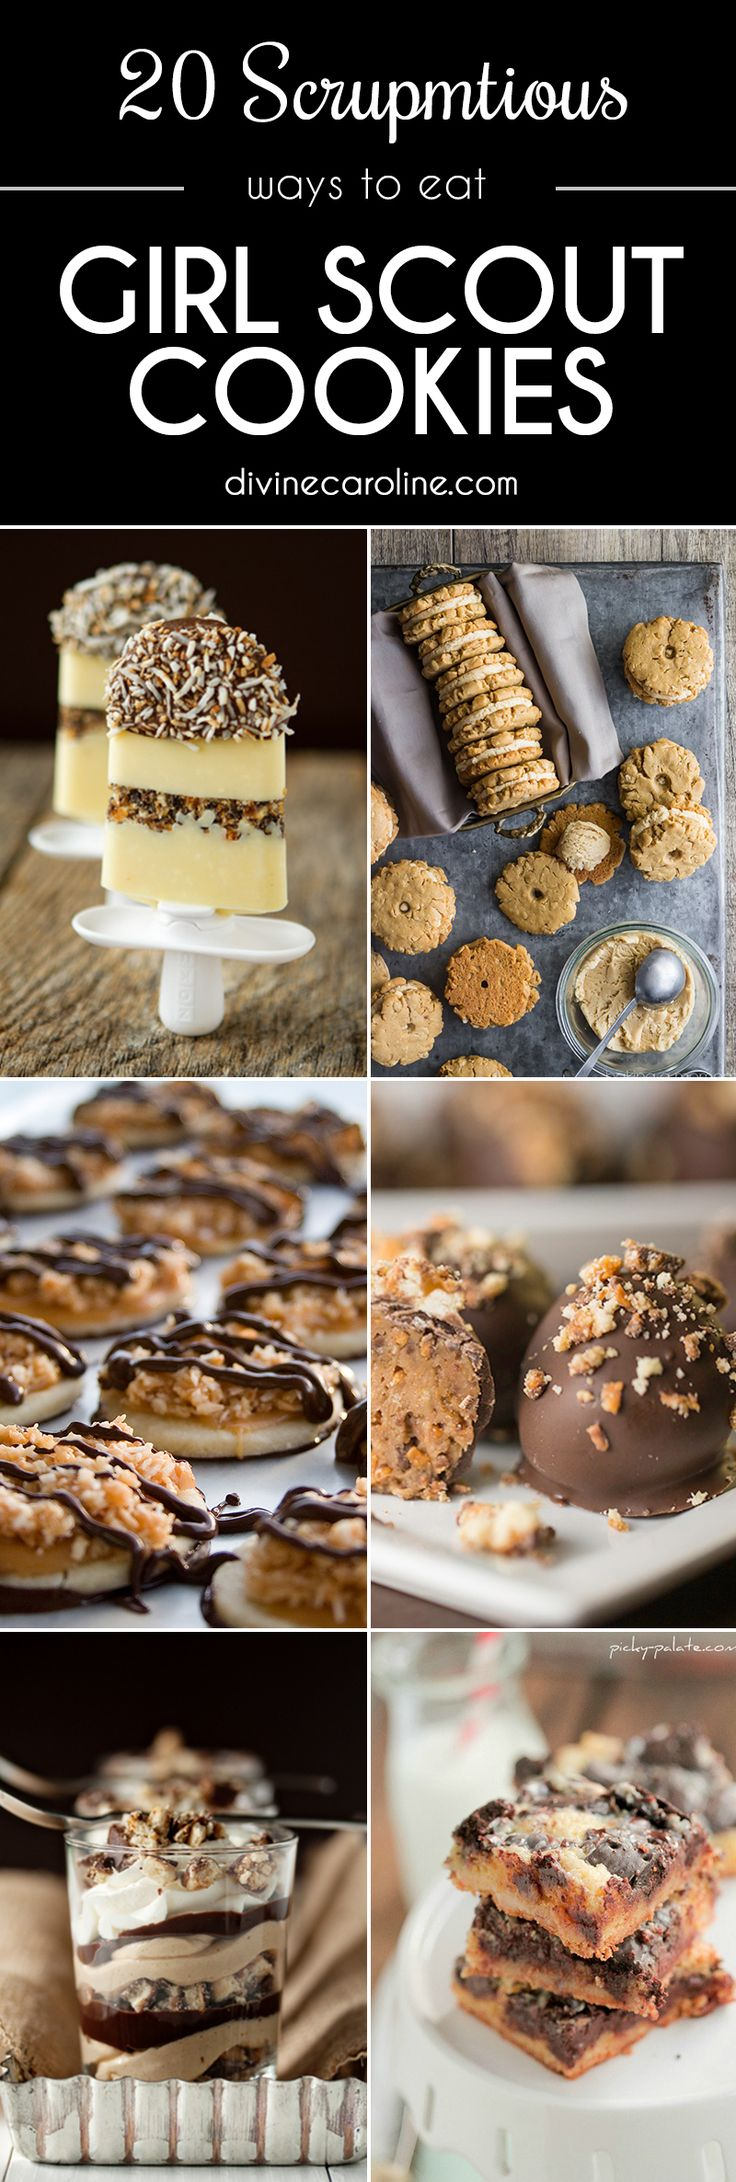 We all have our favorite girl scout cookies. Whether it's Thin Mints, Shortbread or even Caramel deLites, there are a bunch of ways to incorporate this tasty cookies into your dessert recipes.